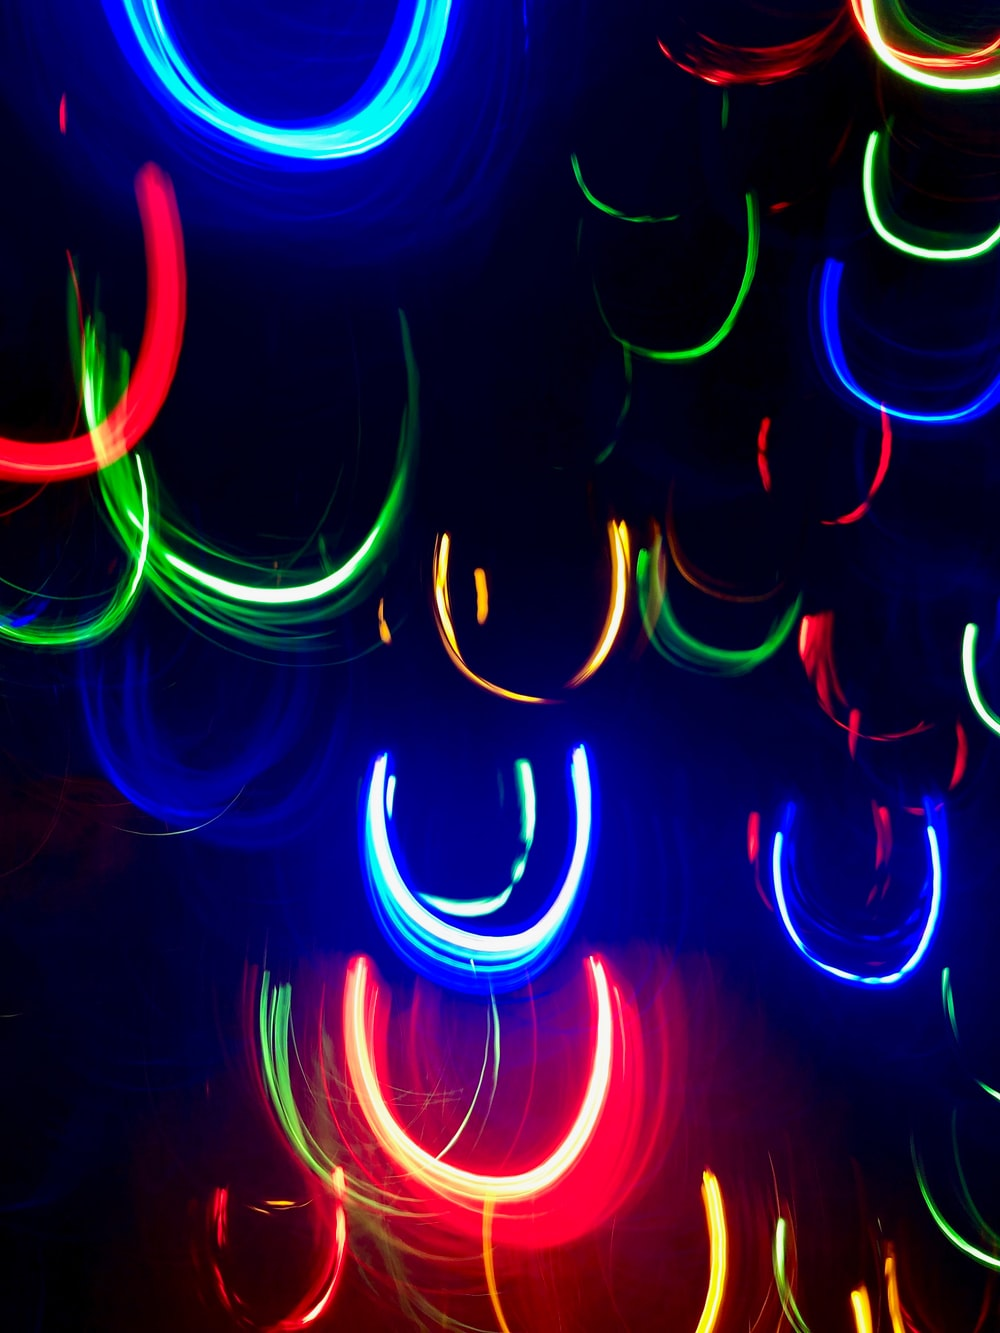 multicolored LED lights hanging during nighttime